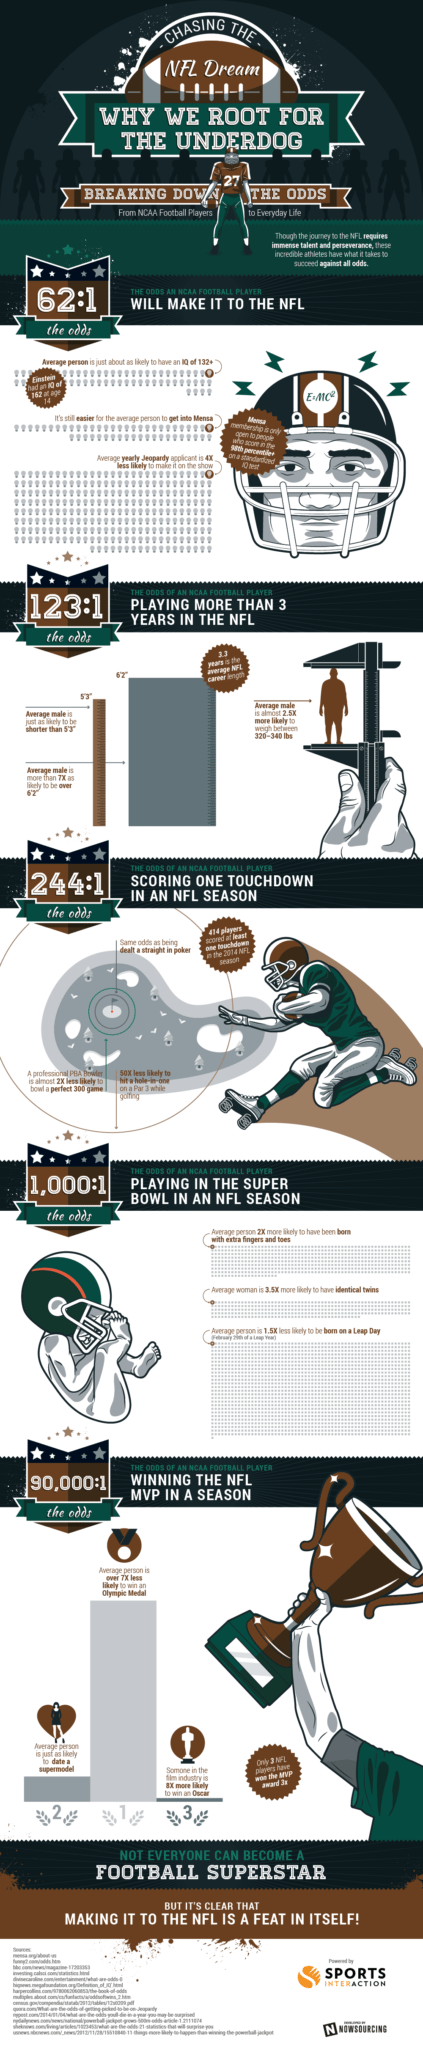 nfl-odds-comparison-infographic